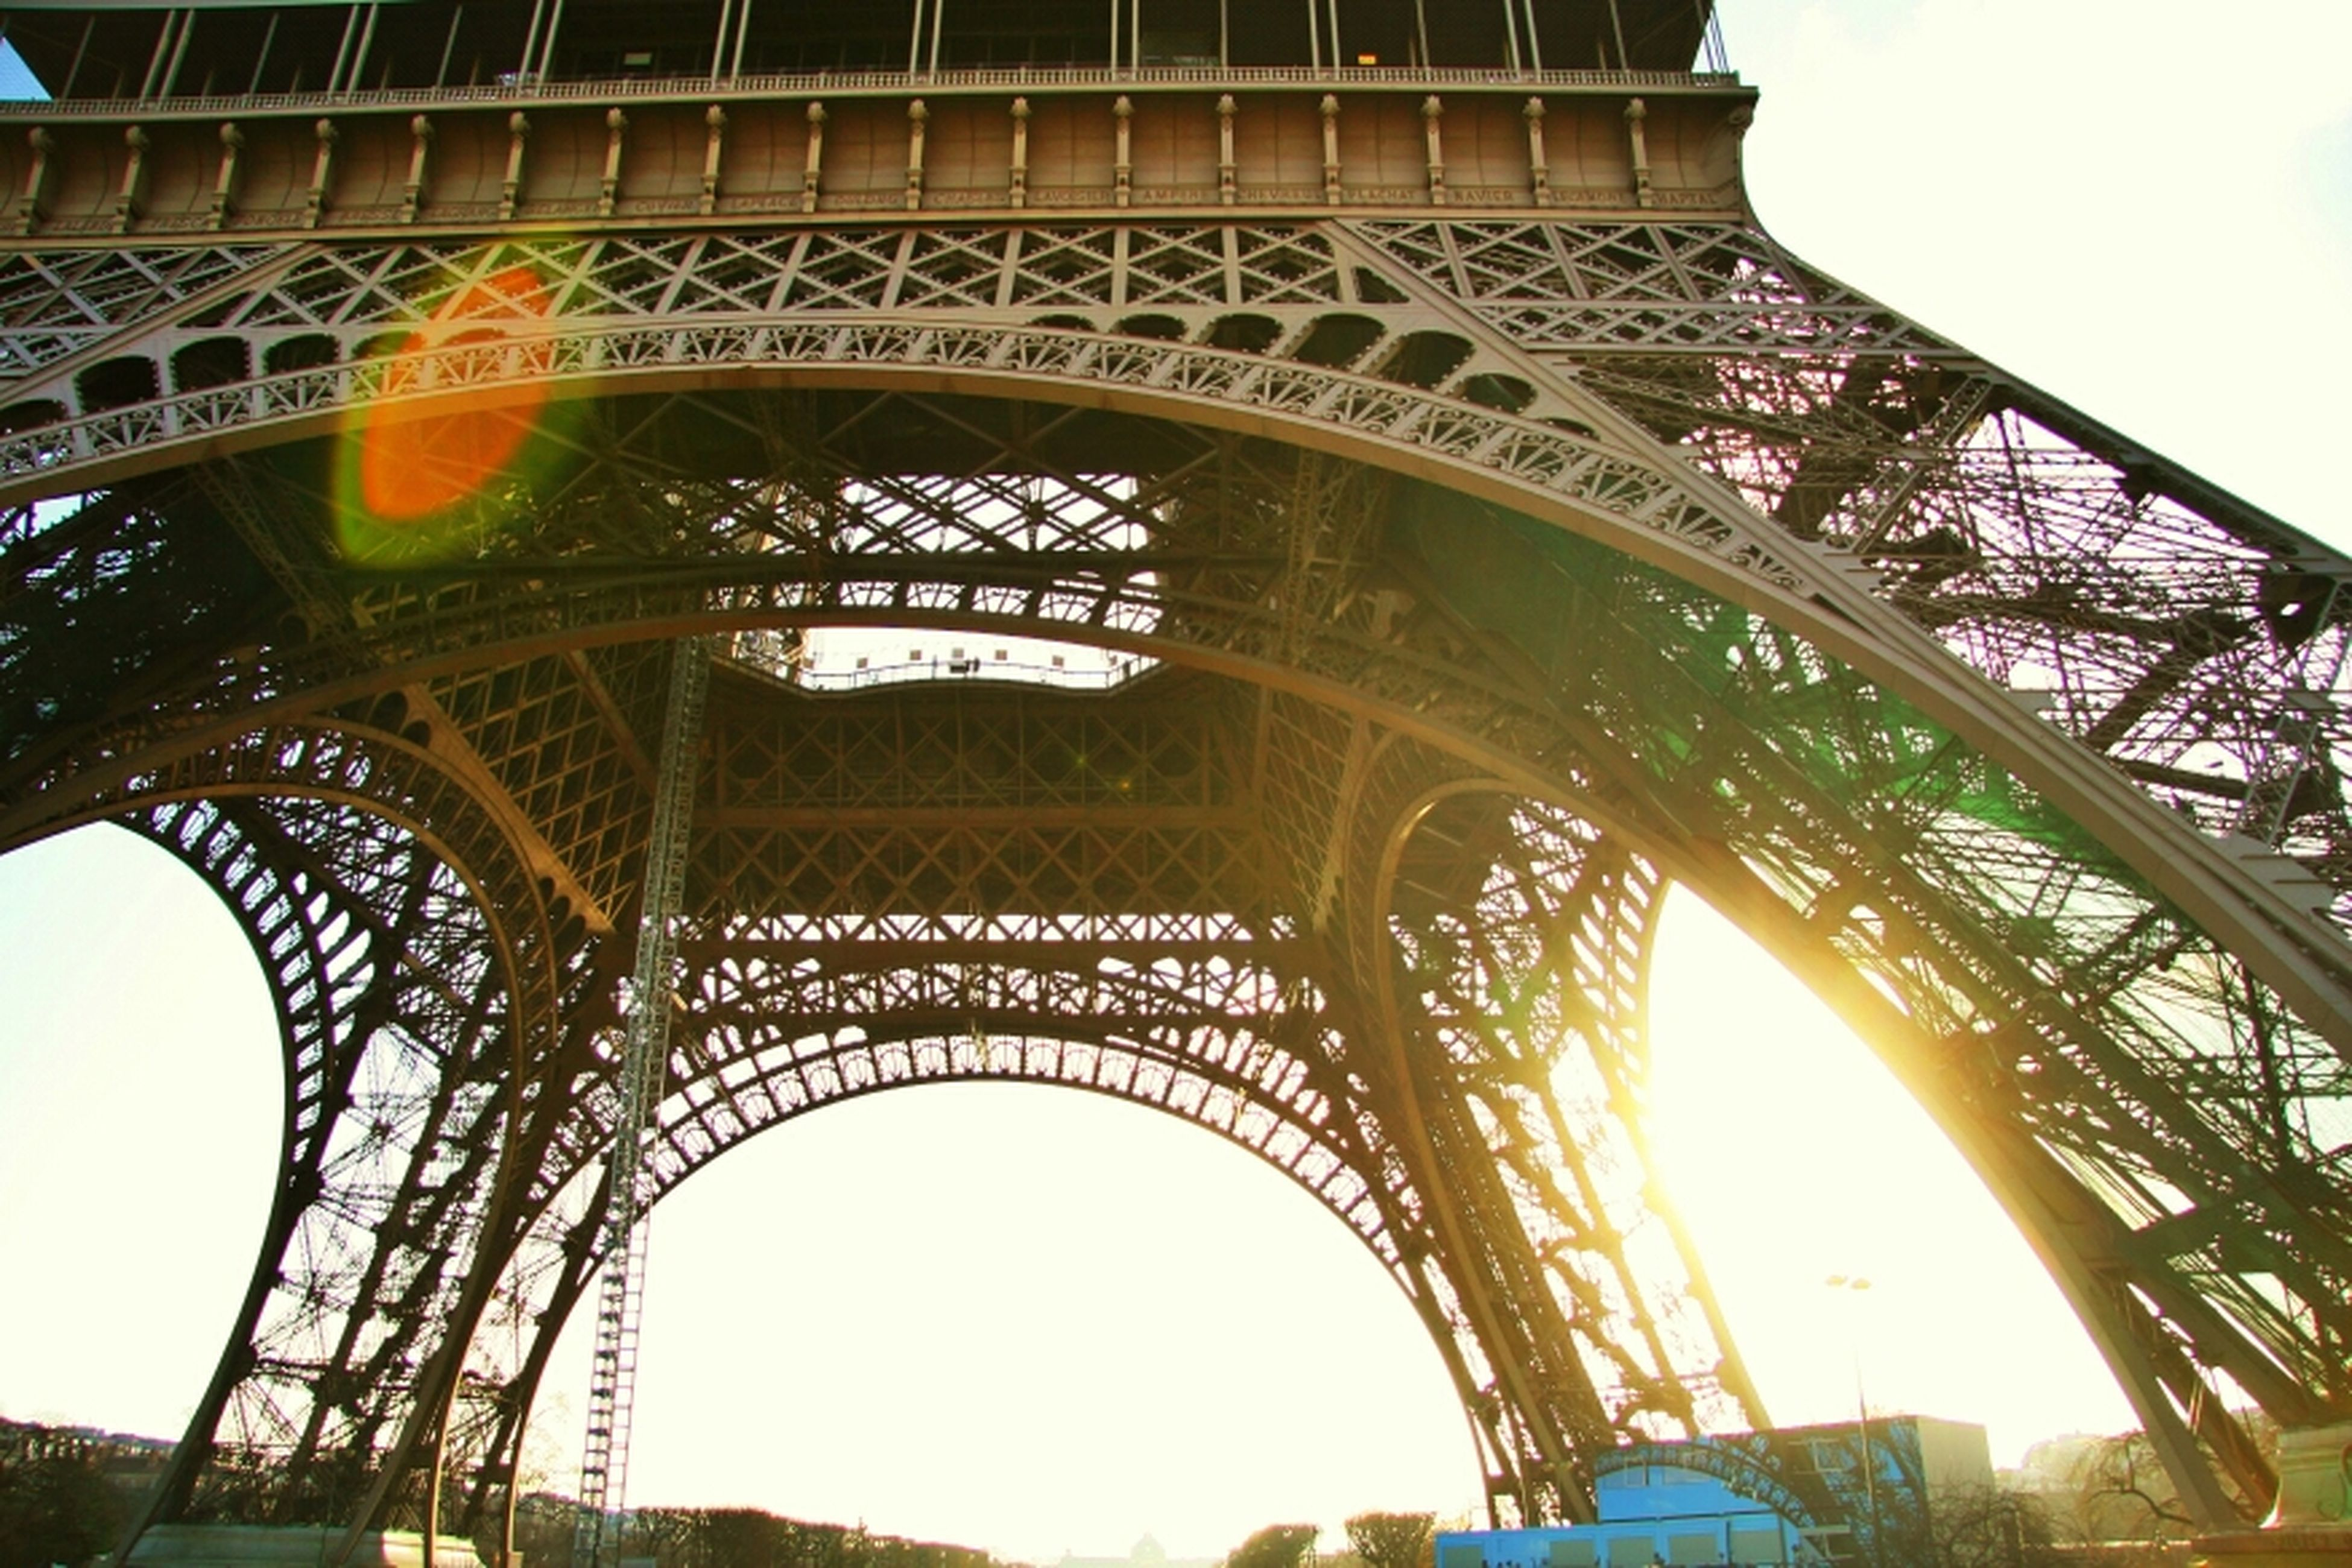 architecture, built structure, arch, low angle view, bridge - man made structure, connection, engineering, famous place, international landmark, travel destinations, tourism, architectural feature, metal, architectural column, bridge, arch bridge, history, sky, travel, capital cities